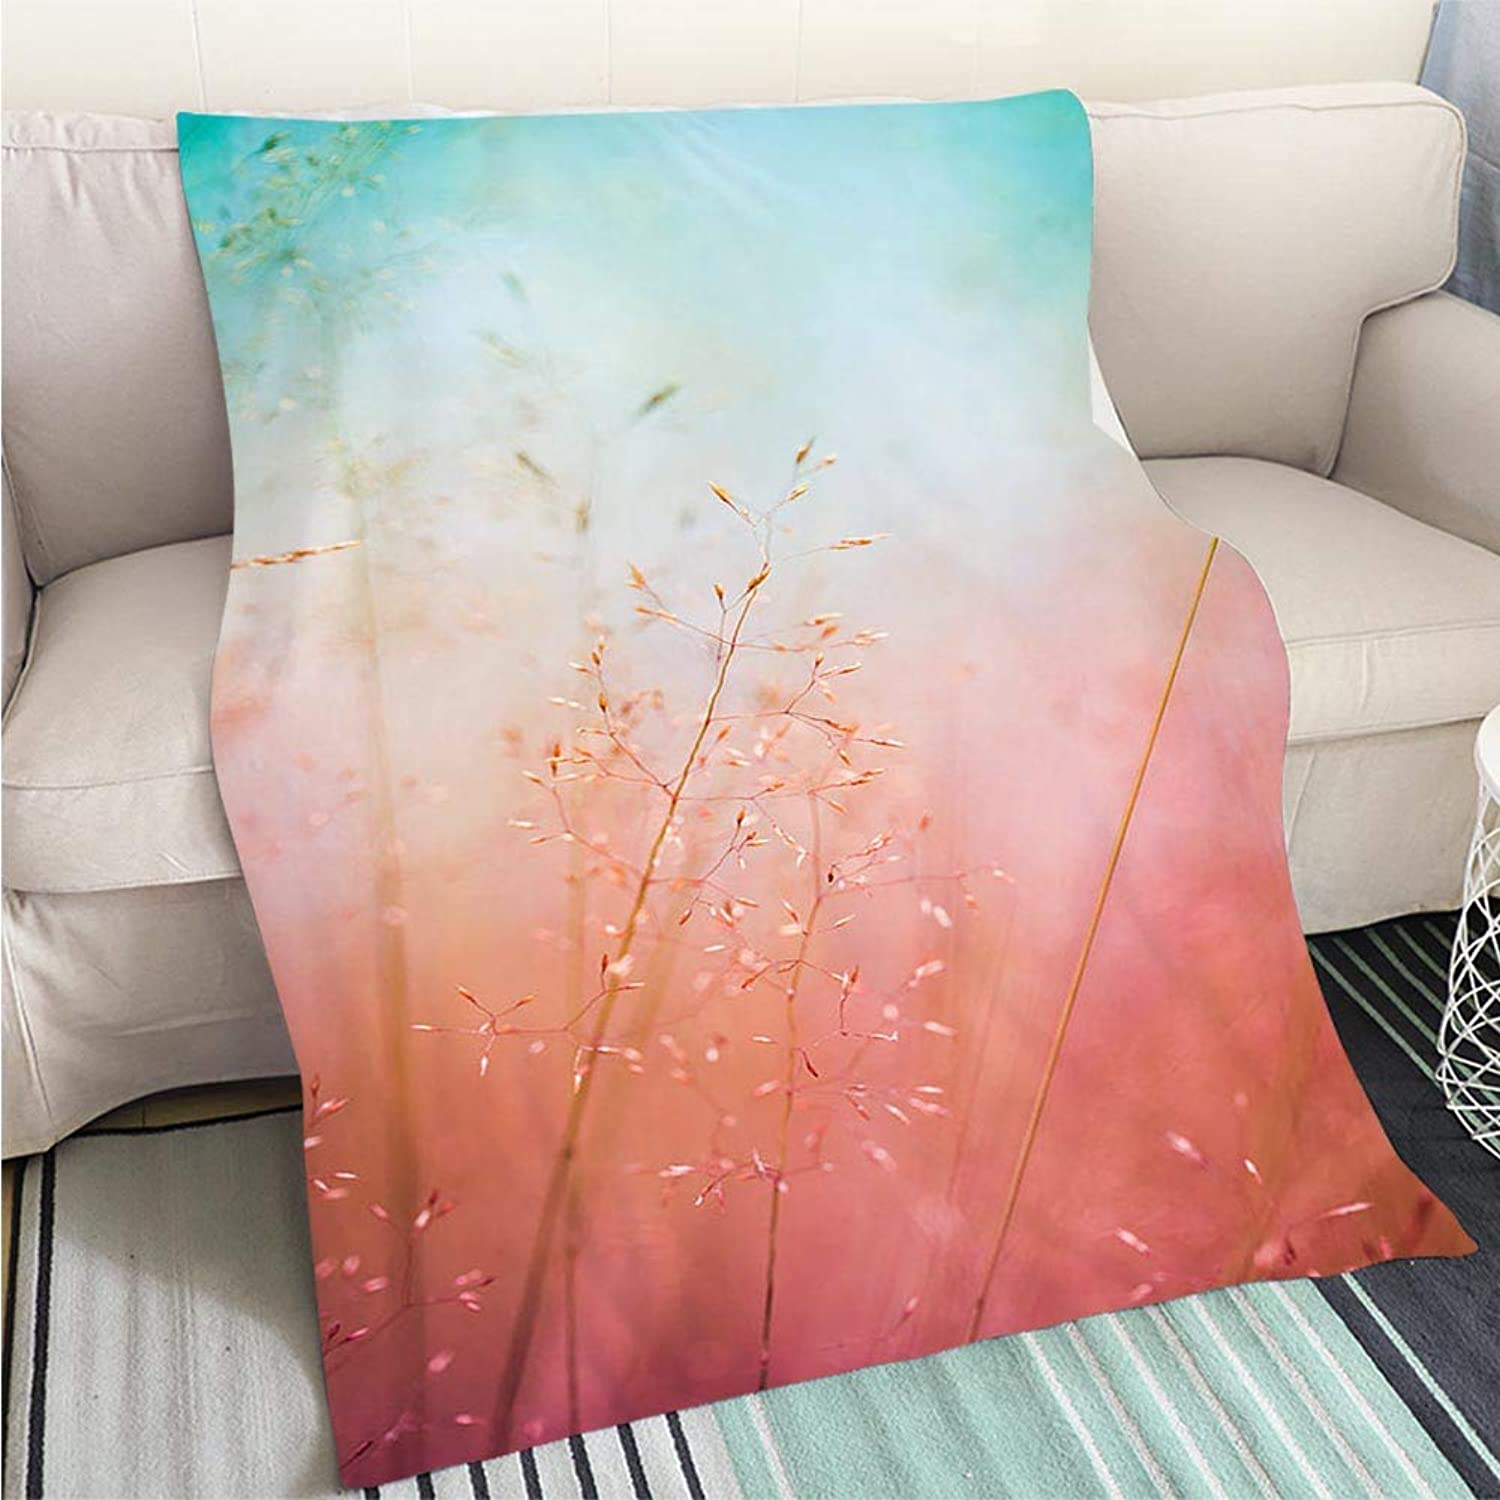 BEICICI Luxury Super Soft Blanket Silhouette of Wildflowers in Meadow During Sunrise or Sunset Sofa Bed or Bed 3D Printing Cool Quilt